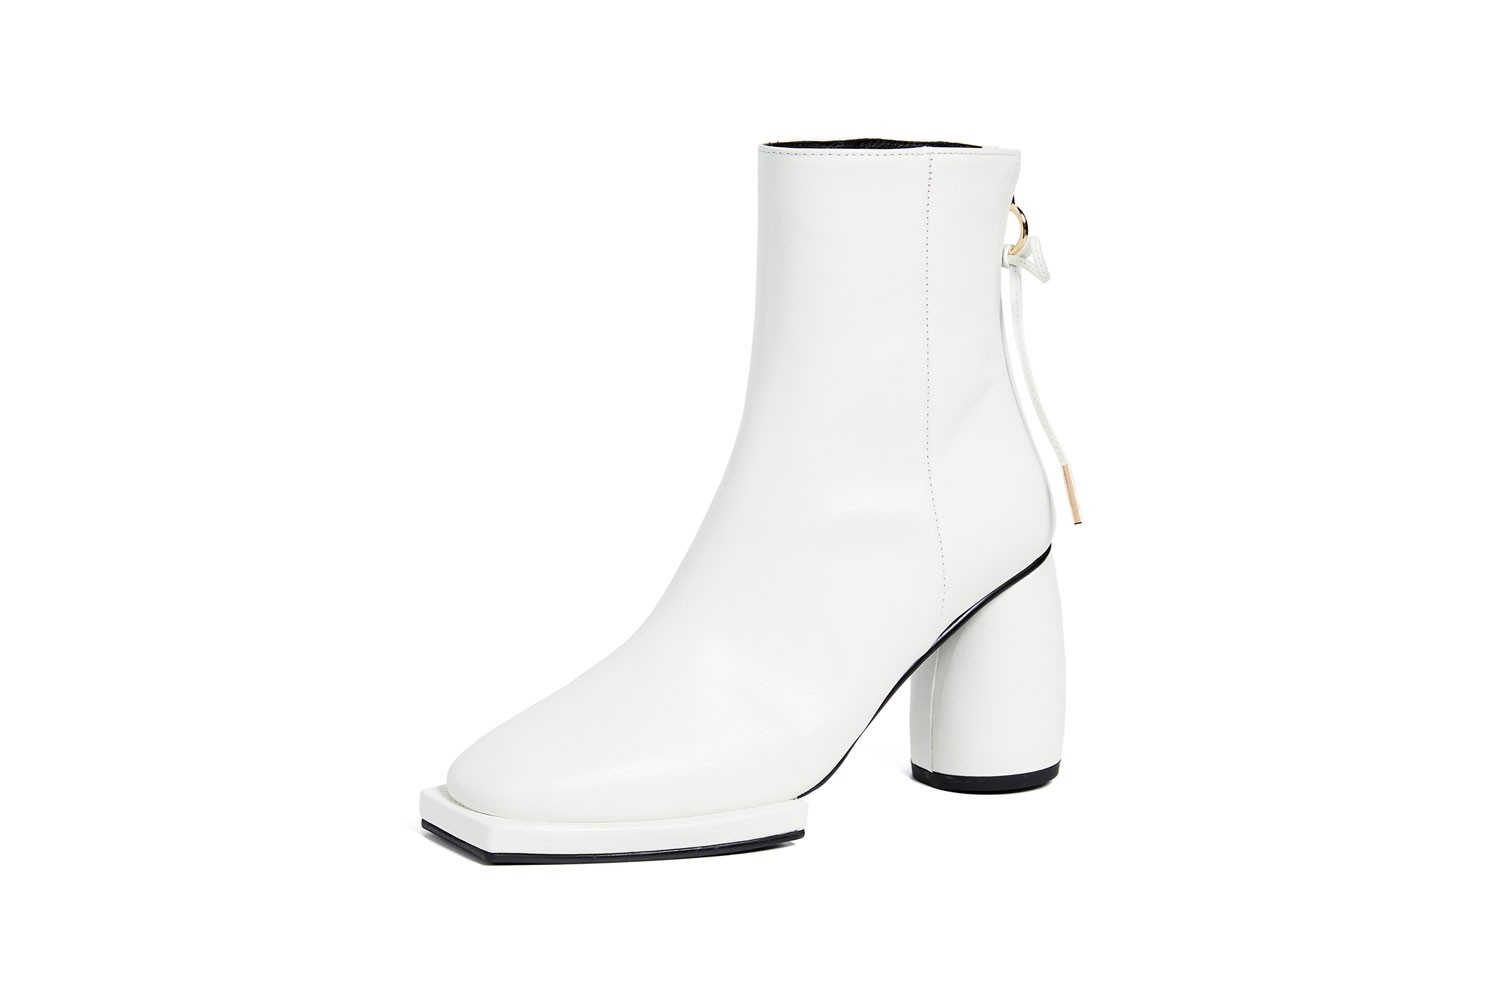 best square toe shoes heels sandals boots fall must have womens bottega veneta by far cult gaia where to buy